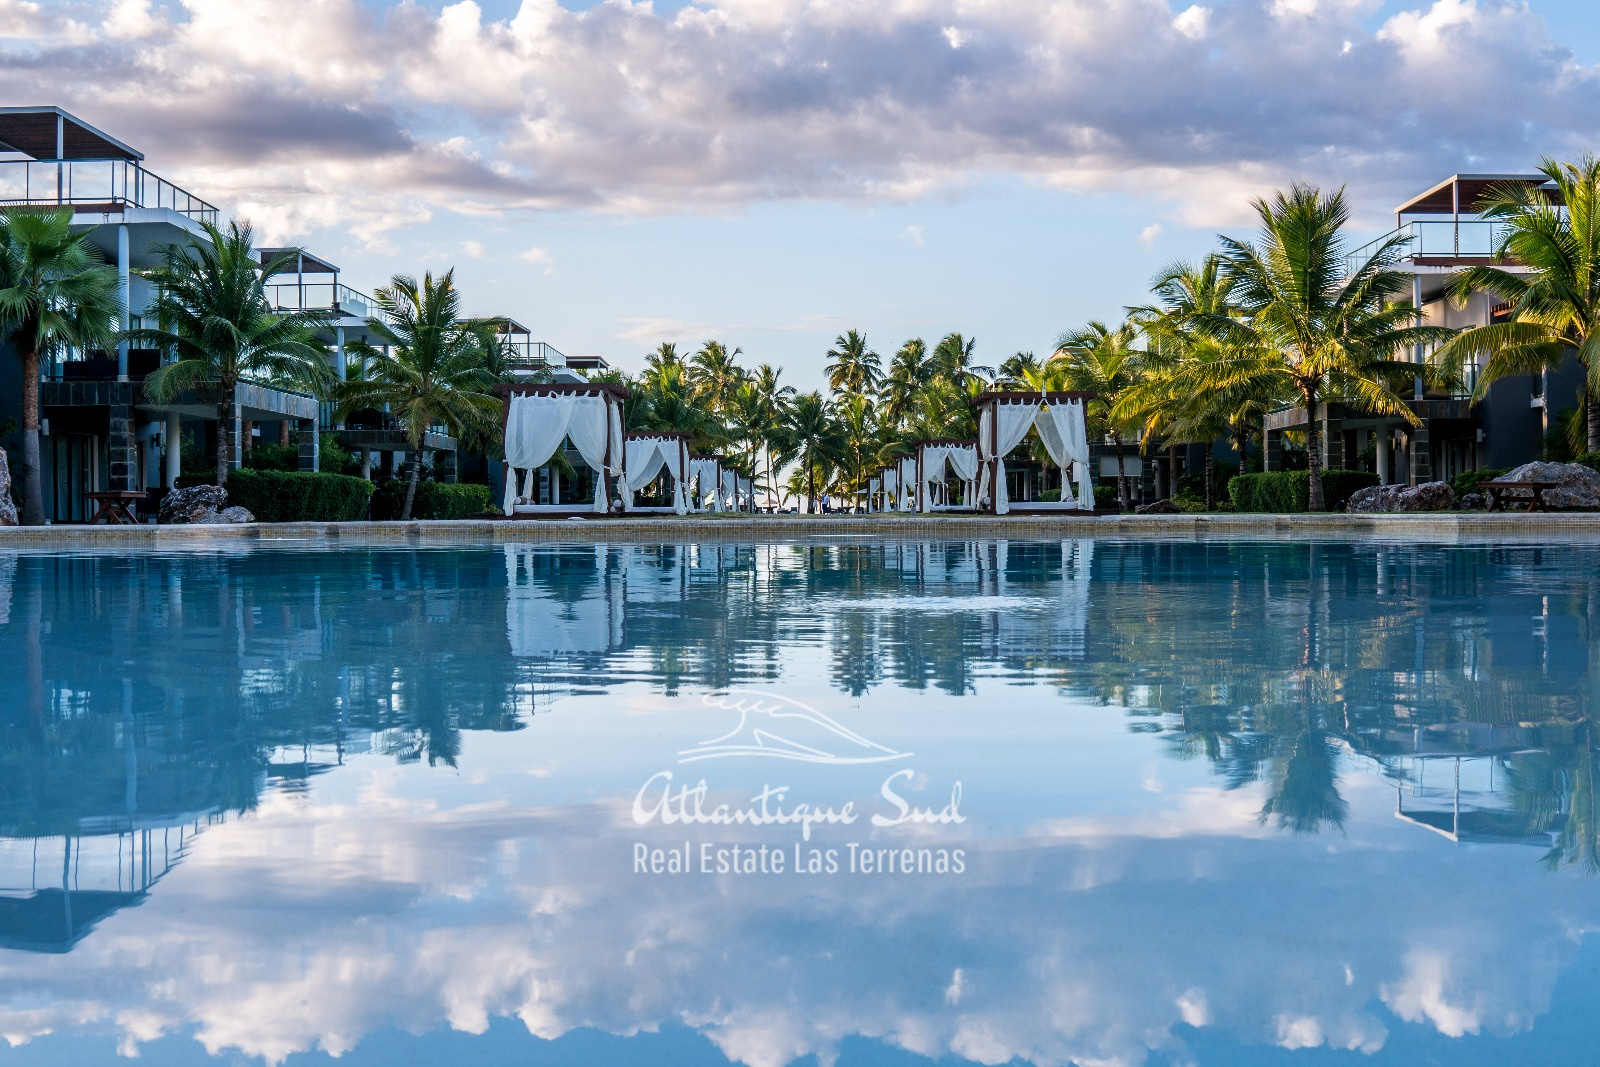 Luxurious condos in all-inclusive beachfront hotel Real Estate Las Terrenas Atlantique Sud6.jpeg